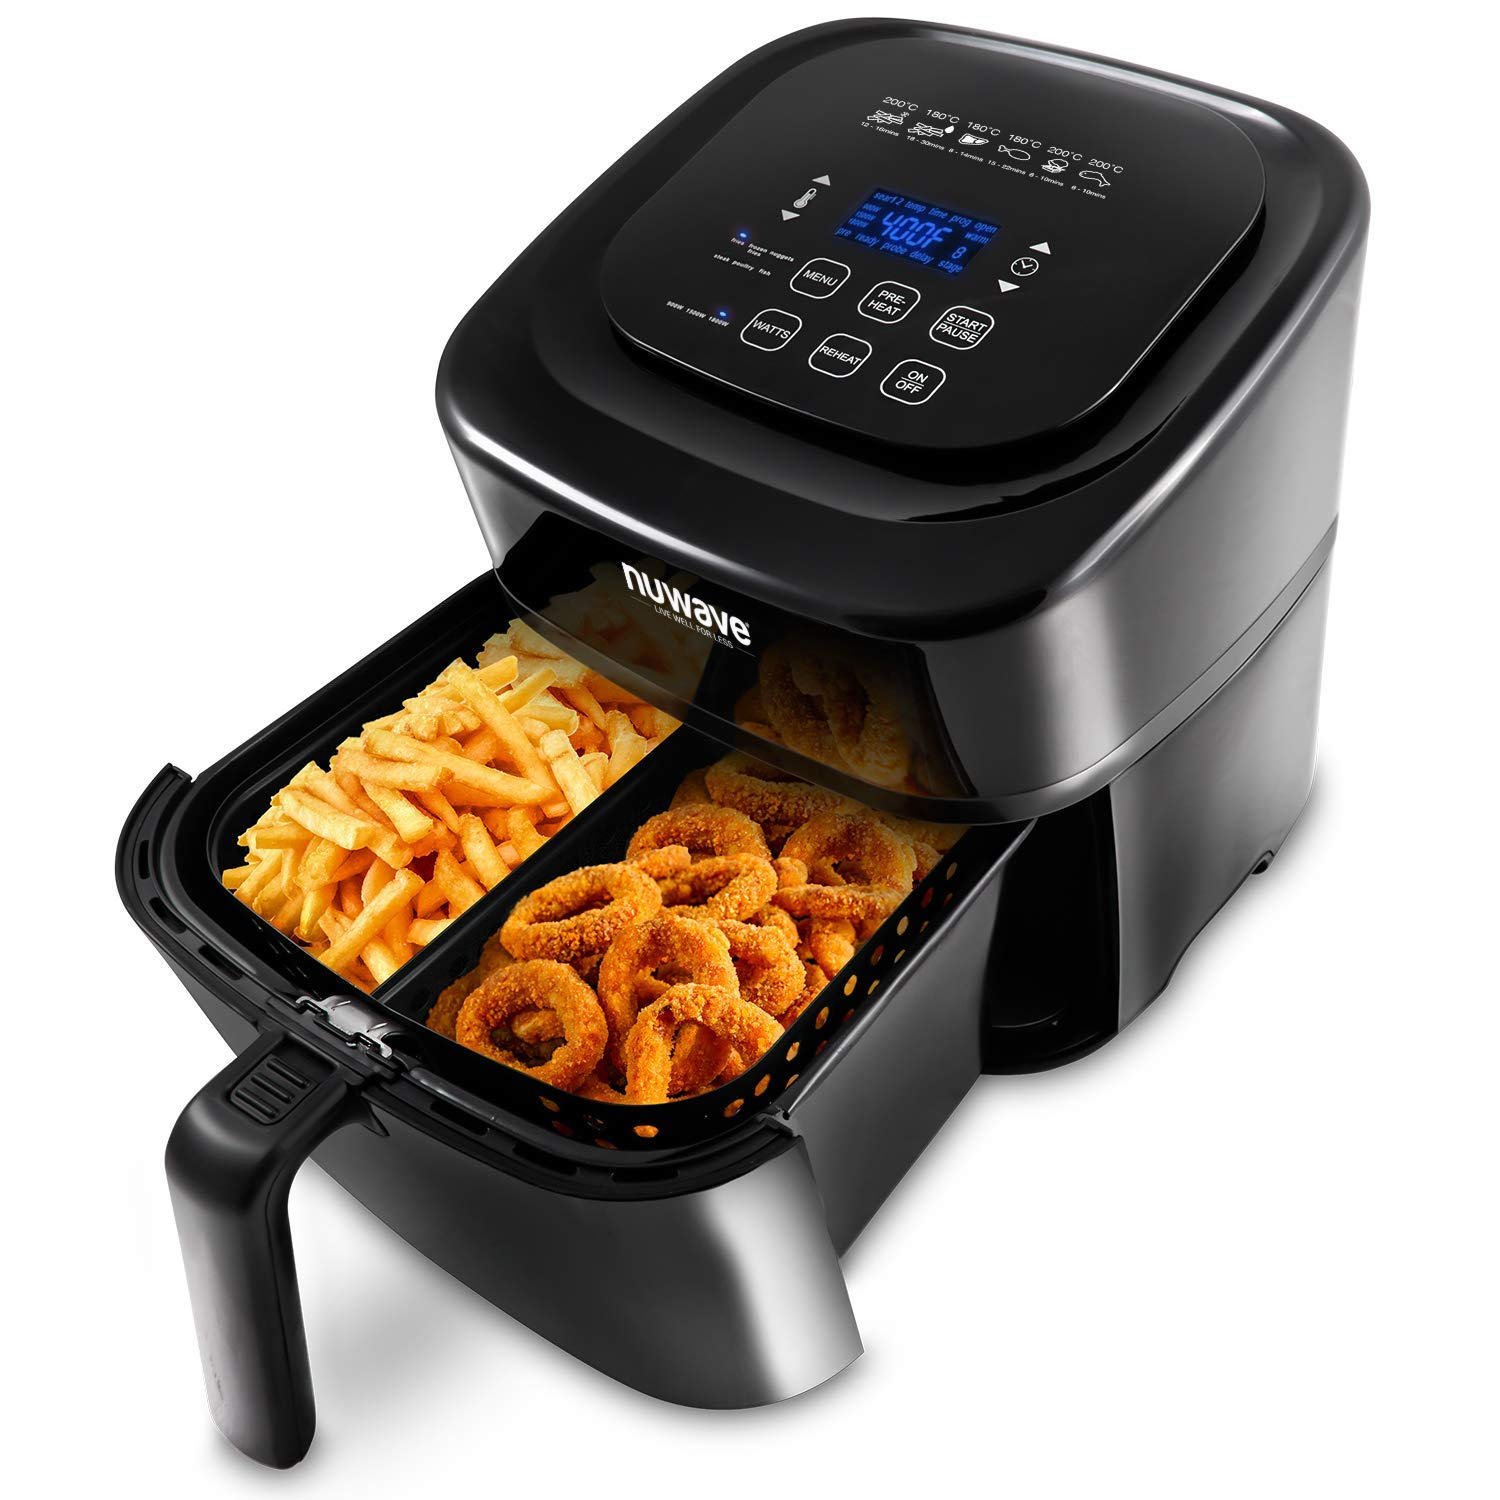 6 quart One Touch Controls Functions Removable